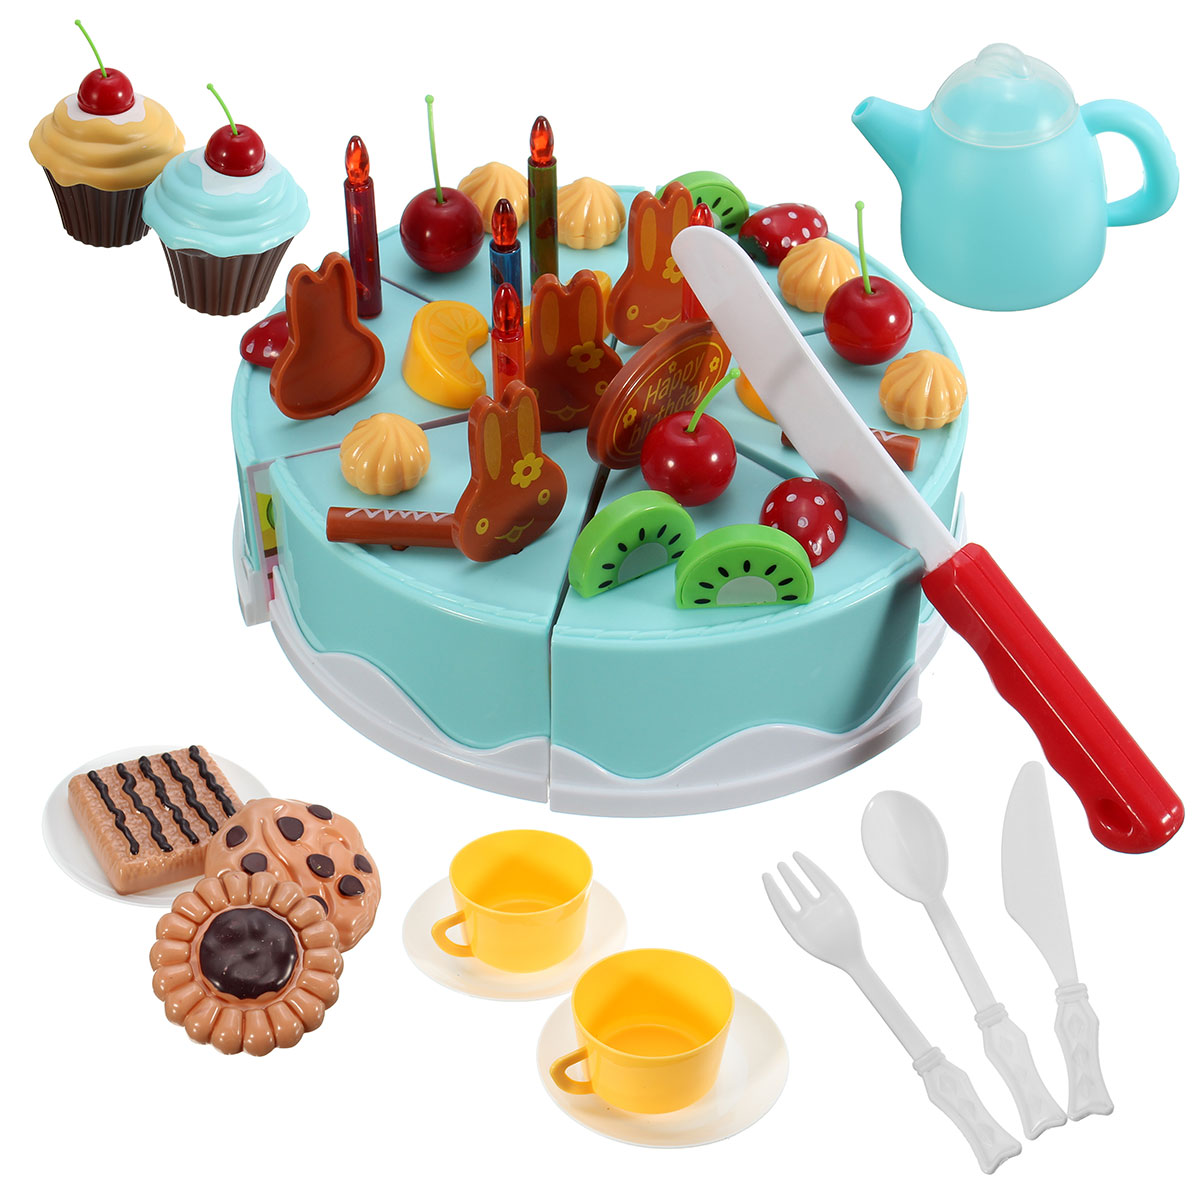 54pcs Kids Kitchen Toys Birthday Cake Cut Toys Pretend Play Plastic ...